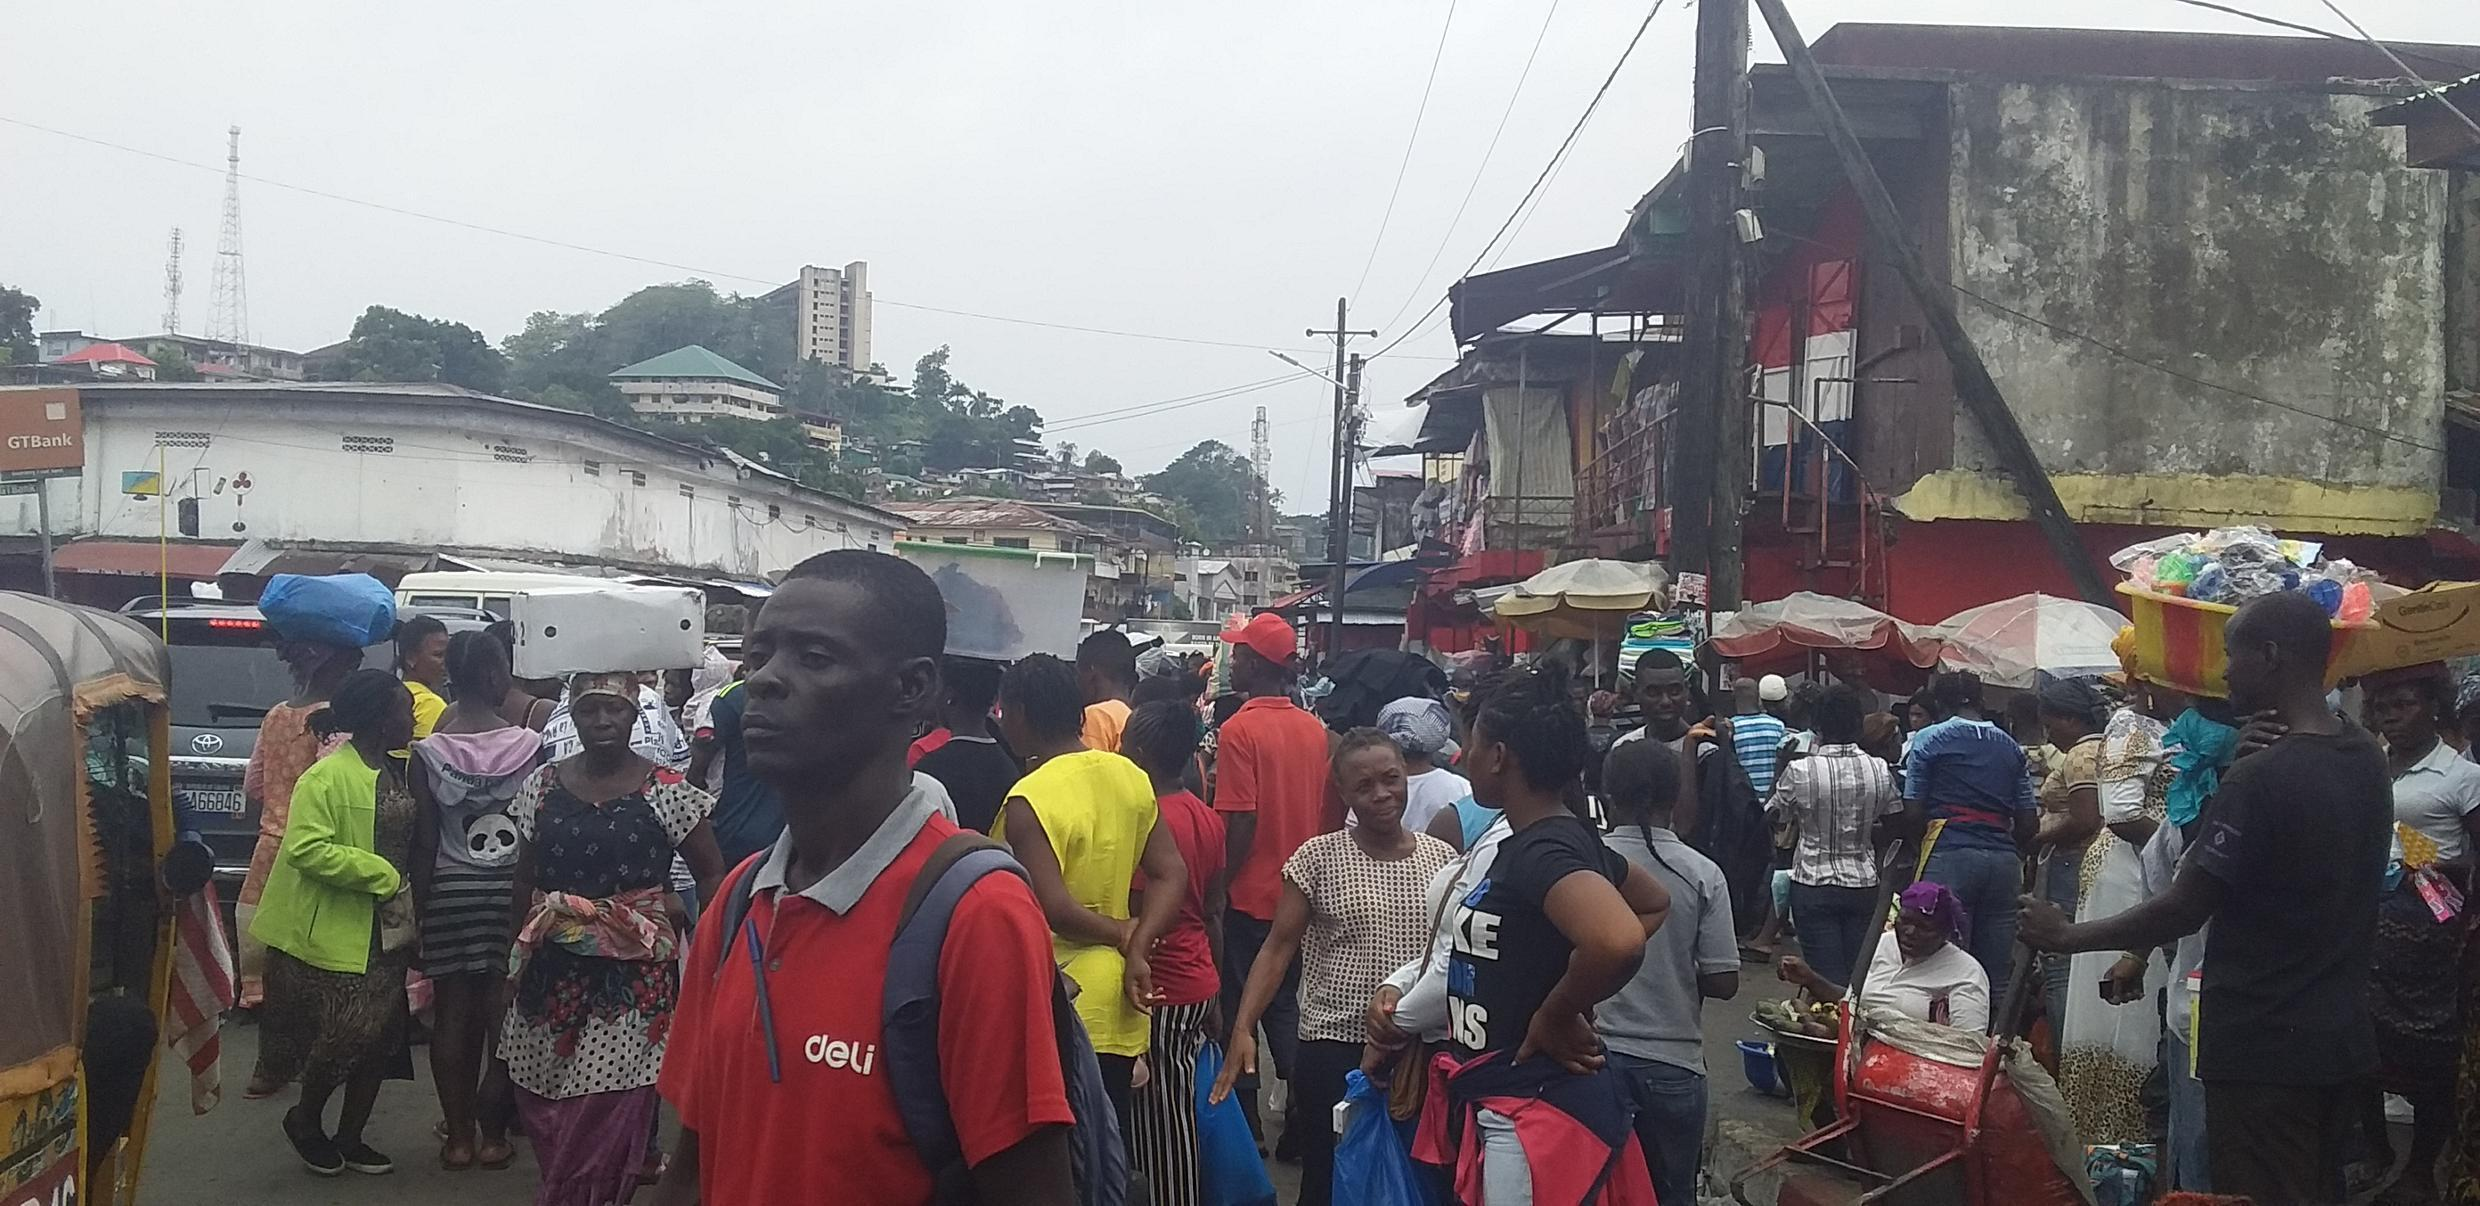 Liberians are defying the health protocols to prevent Covid-19 and are buying food at the markets before the lockdown